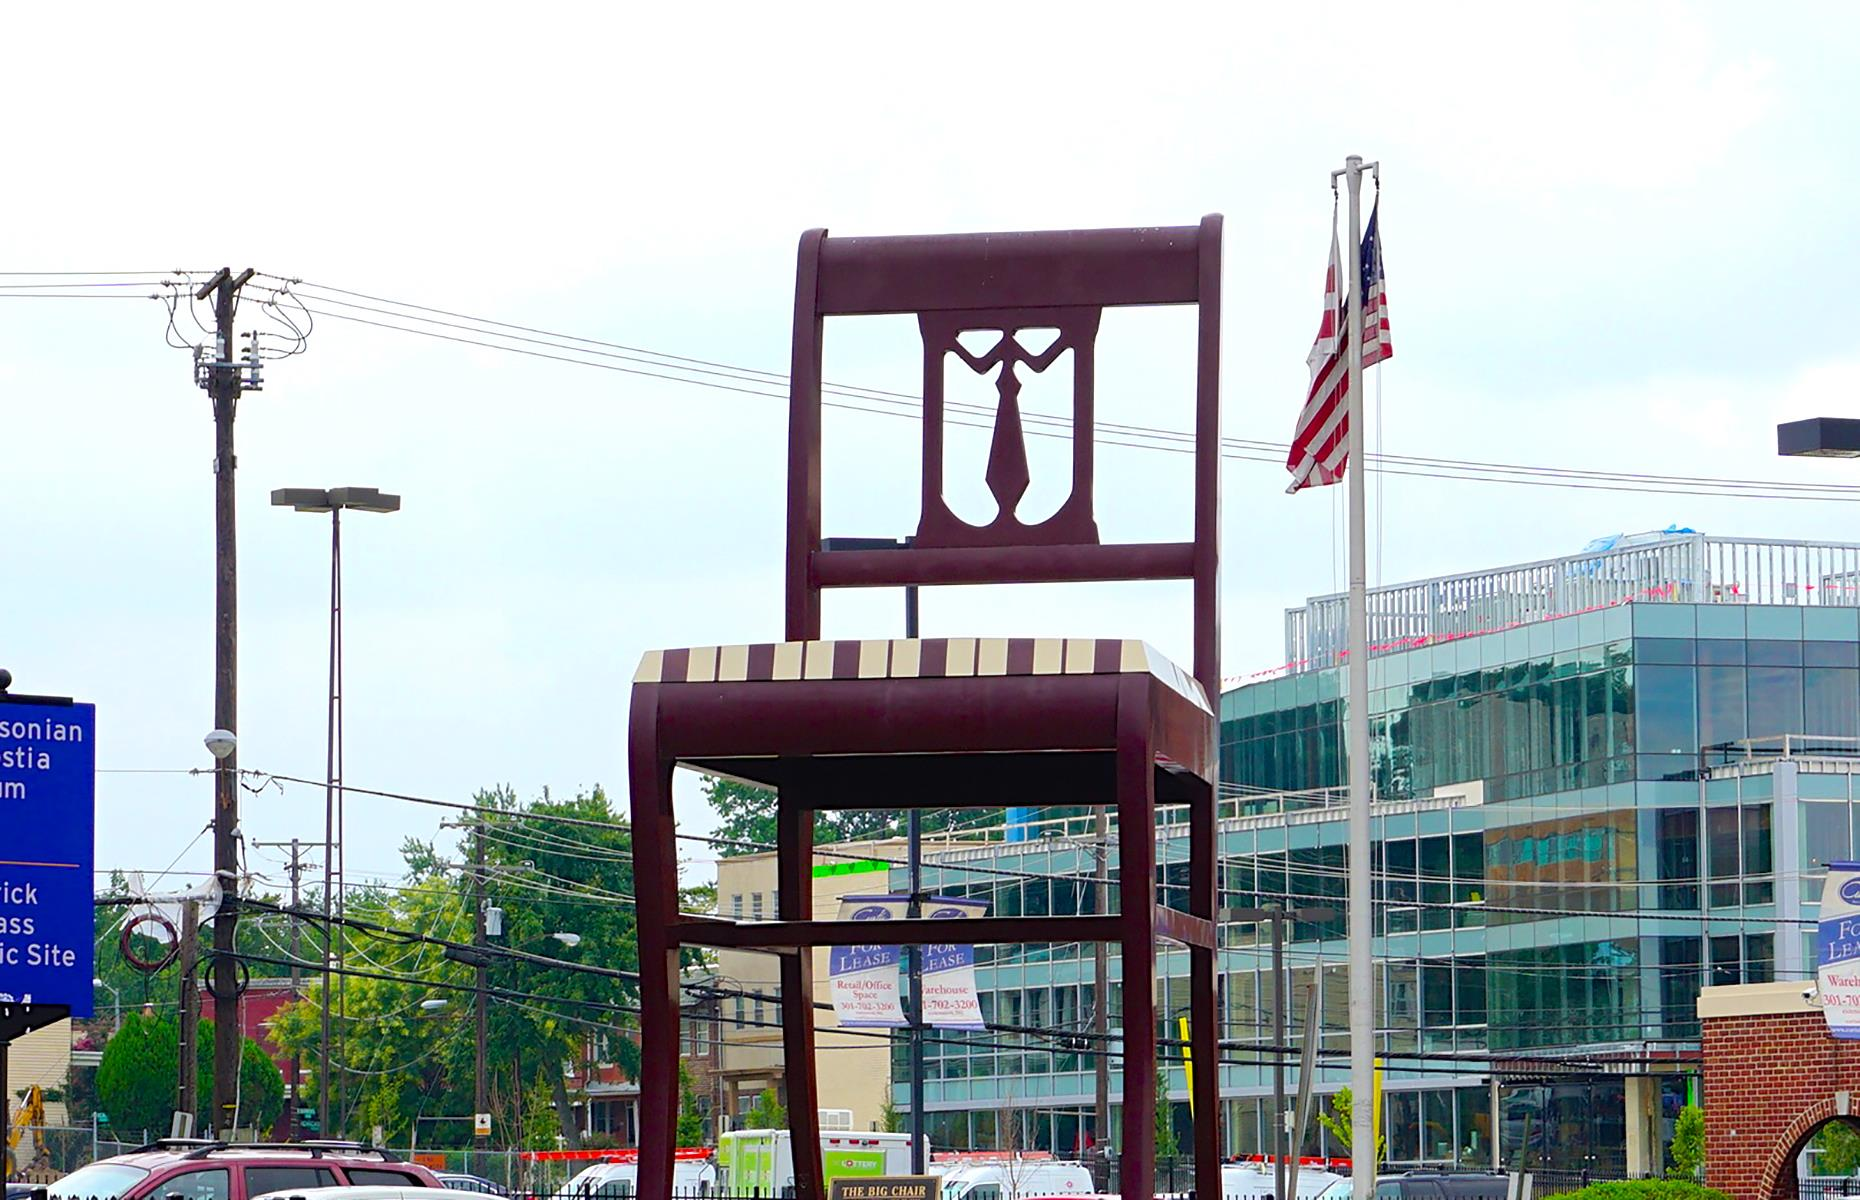 Slide 34 of 37: This larger-than-life pew is for peering at rather than perching on. You'll find it in DC's Anacostia neighborhood, towering at almost 20 feet (6m). It was the world's largest chair when it was built in 1959. At the time it was a marketing ploy for Curtis Brown's Furniture company and today, the aluminum replica of the landmark remains a symbol of commercial success and industry. Discover the most stunning statues and sculptures in the world.